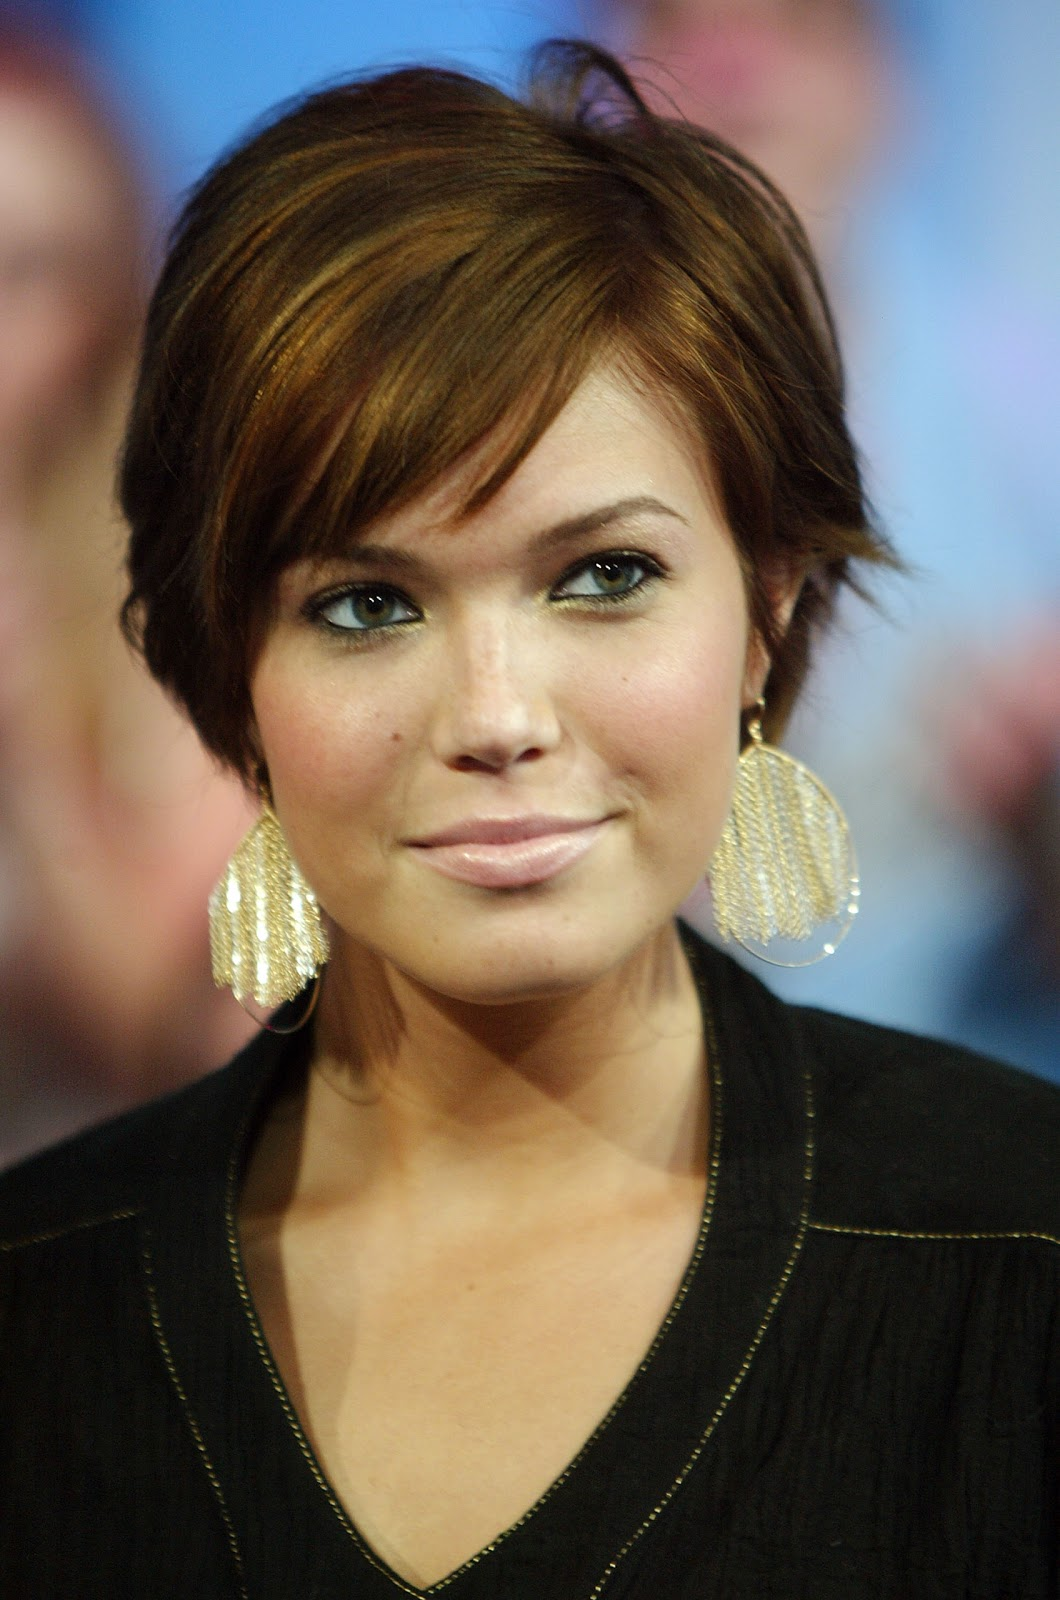 The Interesting Short Hairstyles For Girls With Round Faces Photo